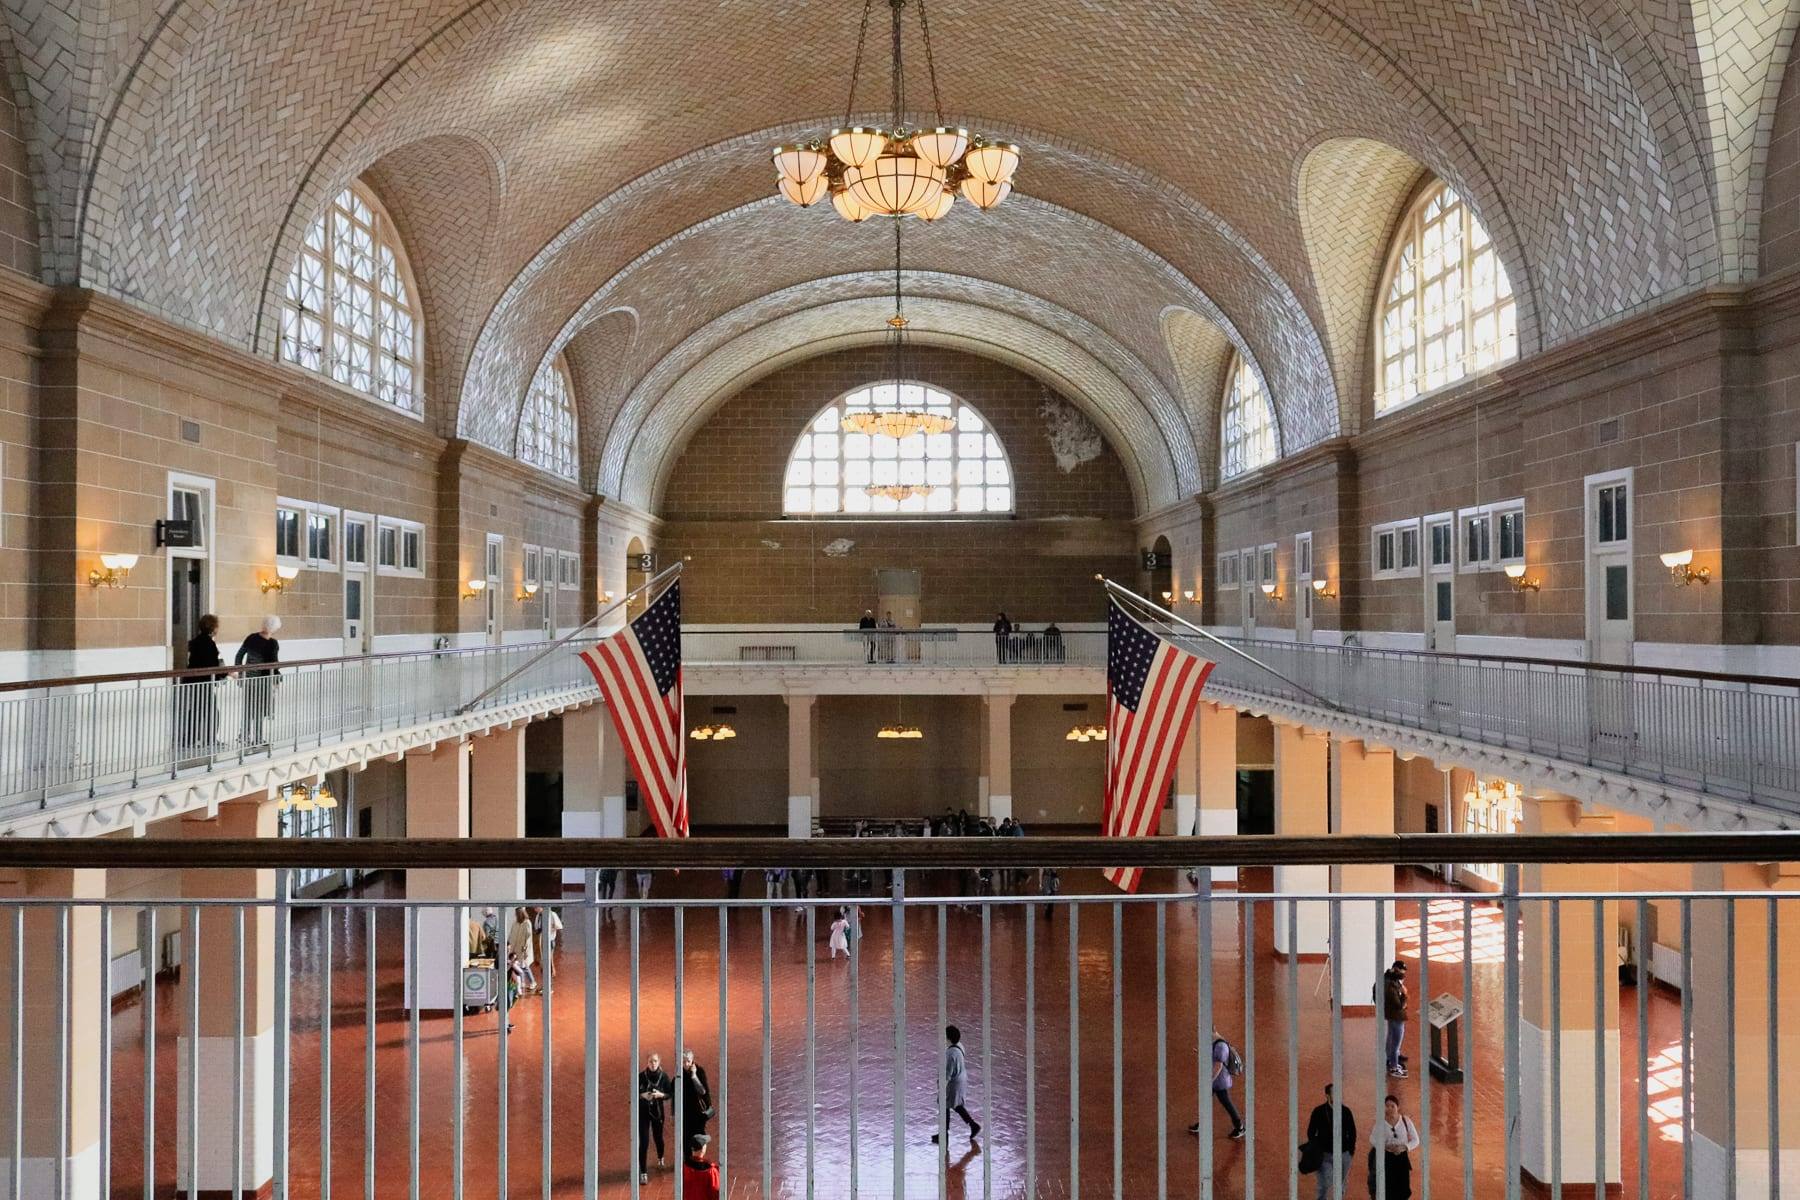 08-NY-journey-ellisisland09-1.jpg